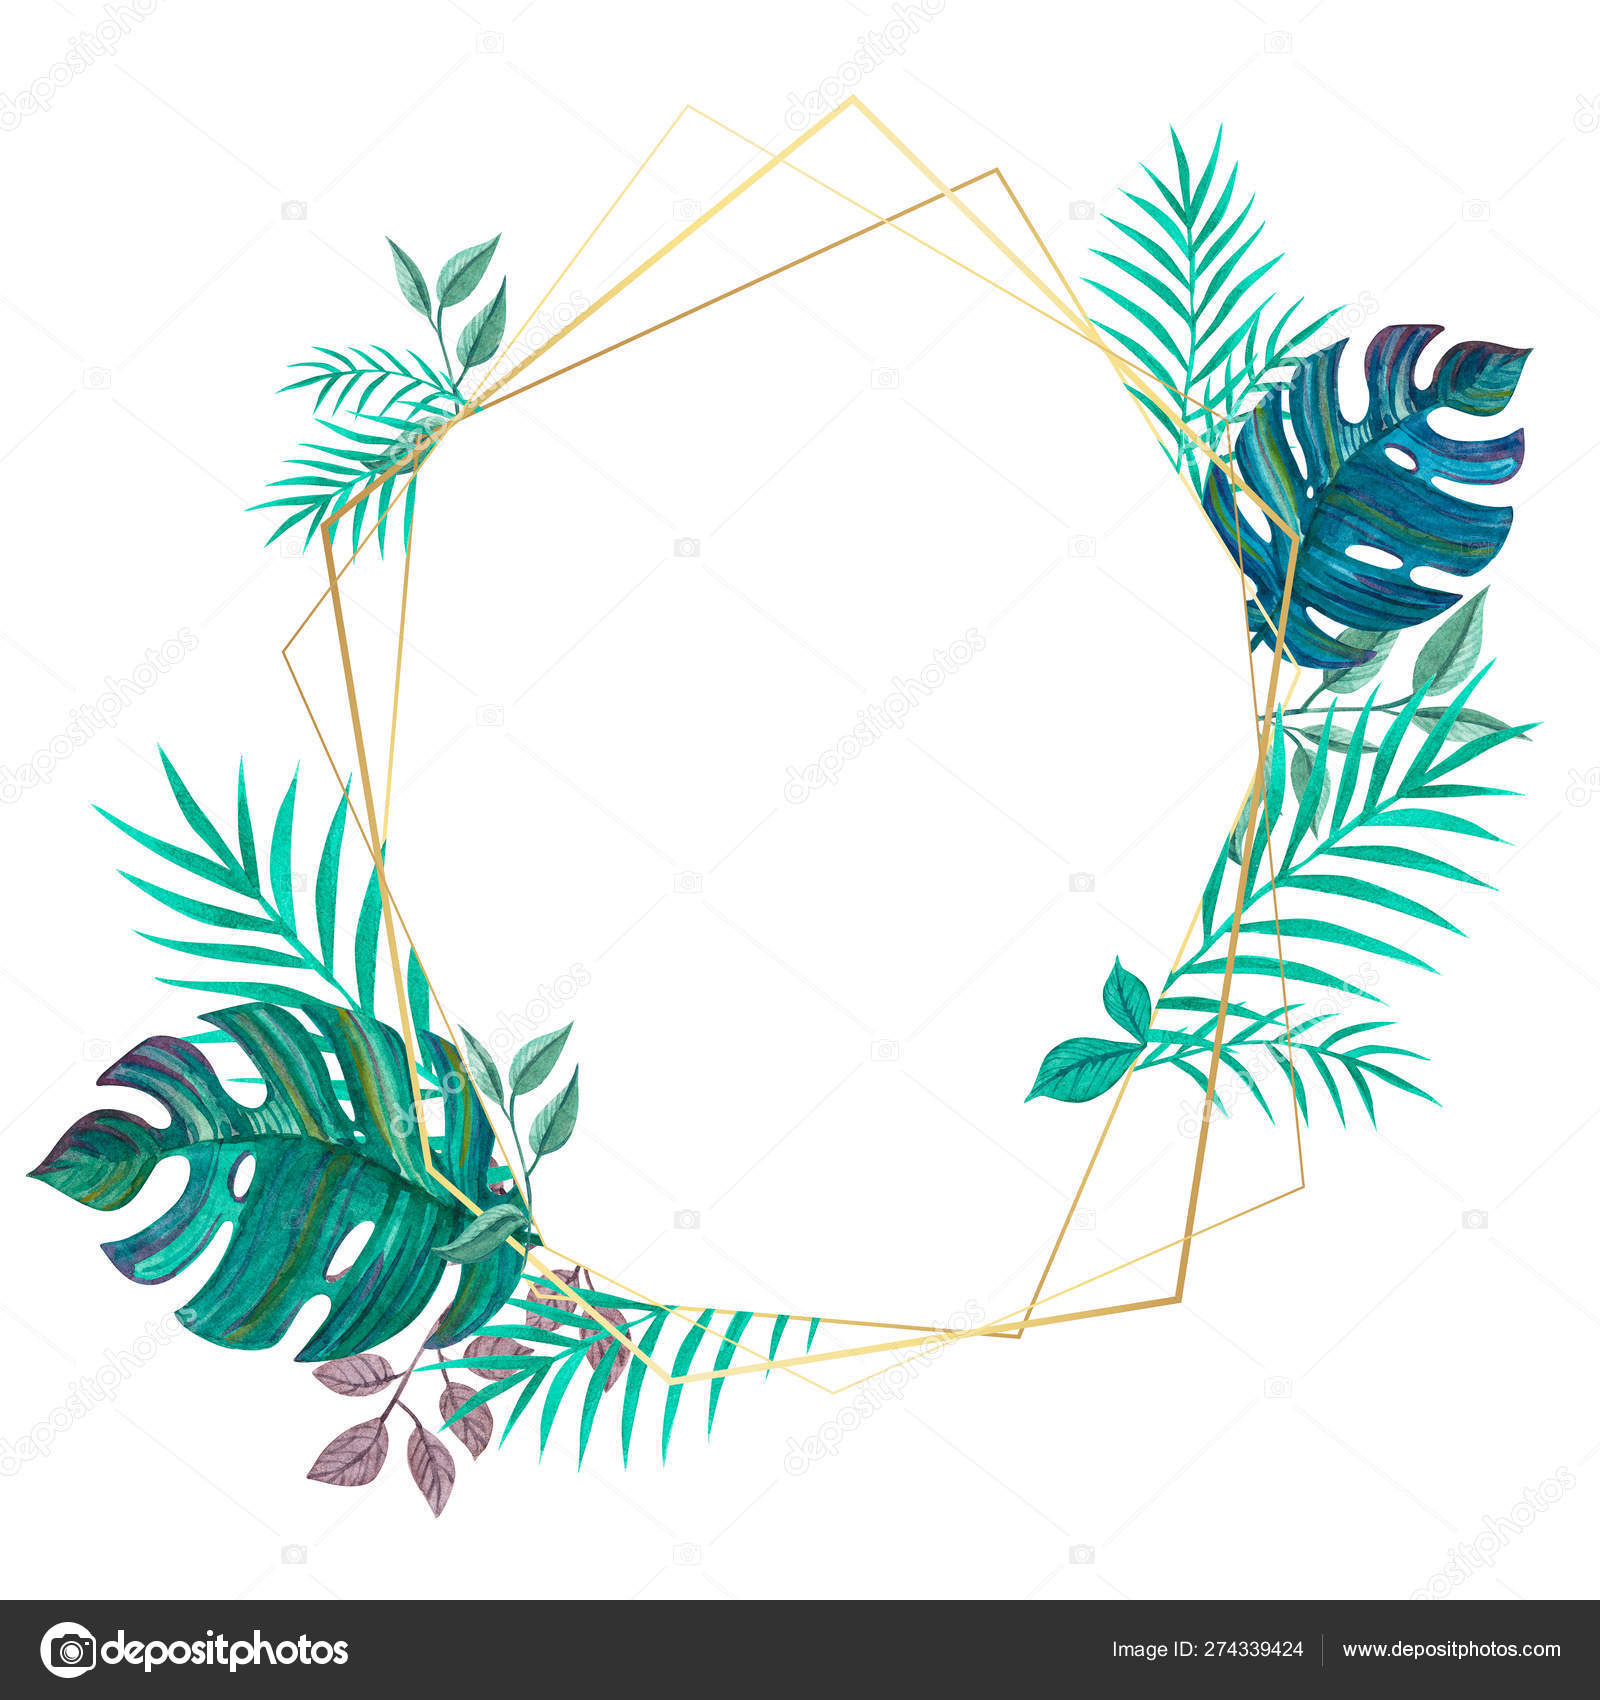 Tropical Leaves Geometric Gold Frame Freehand Drawing Stock Photo C Anana Go 274339424 Seamless tropical gold luxury pattern. tropical leaves geometric gold frame freehand drawing stock photo c anana go 274339424